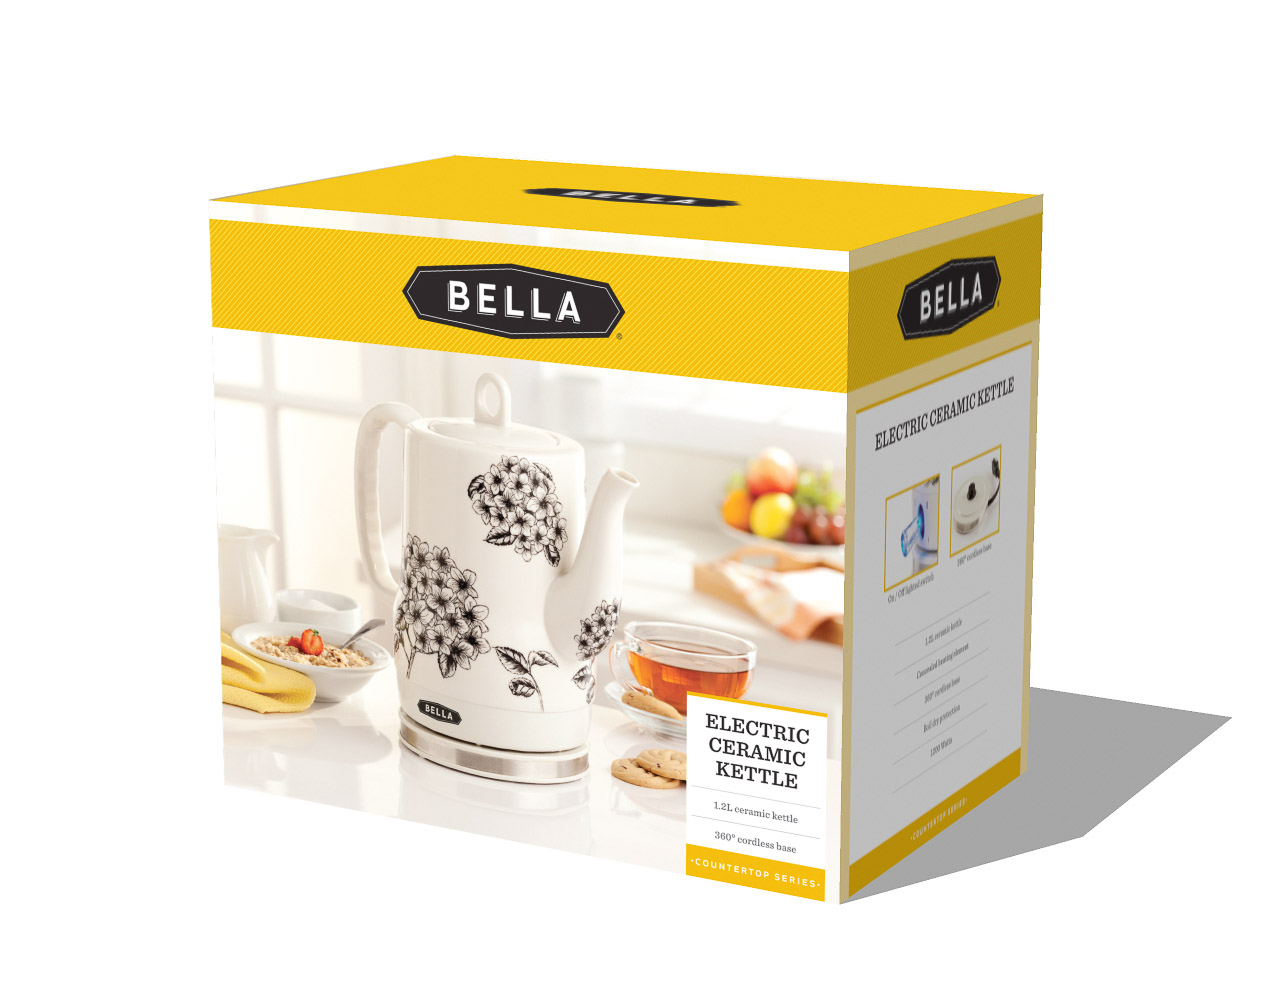 Emballage Electric_Ceramic_Kettle